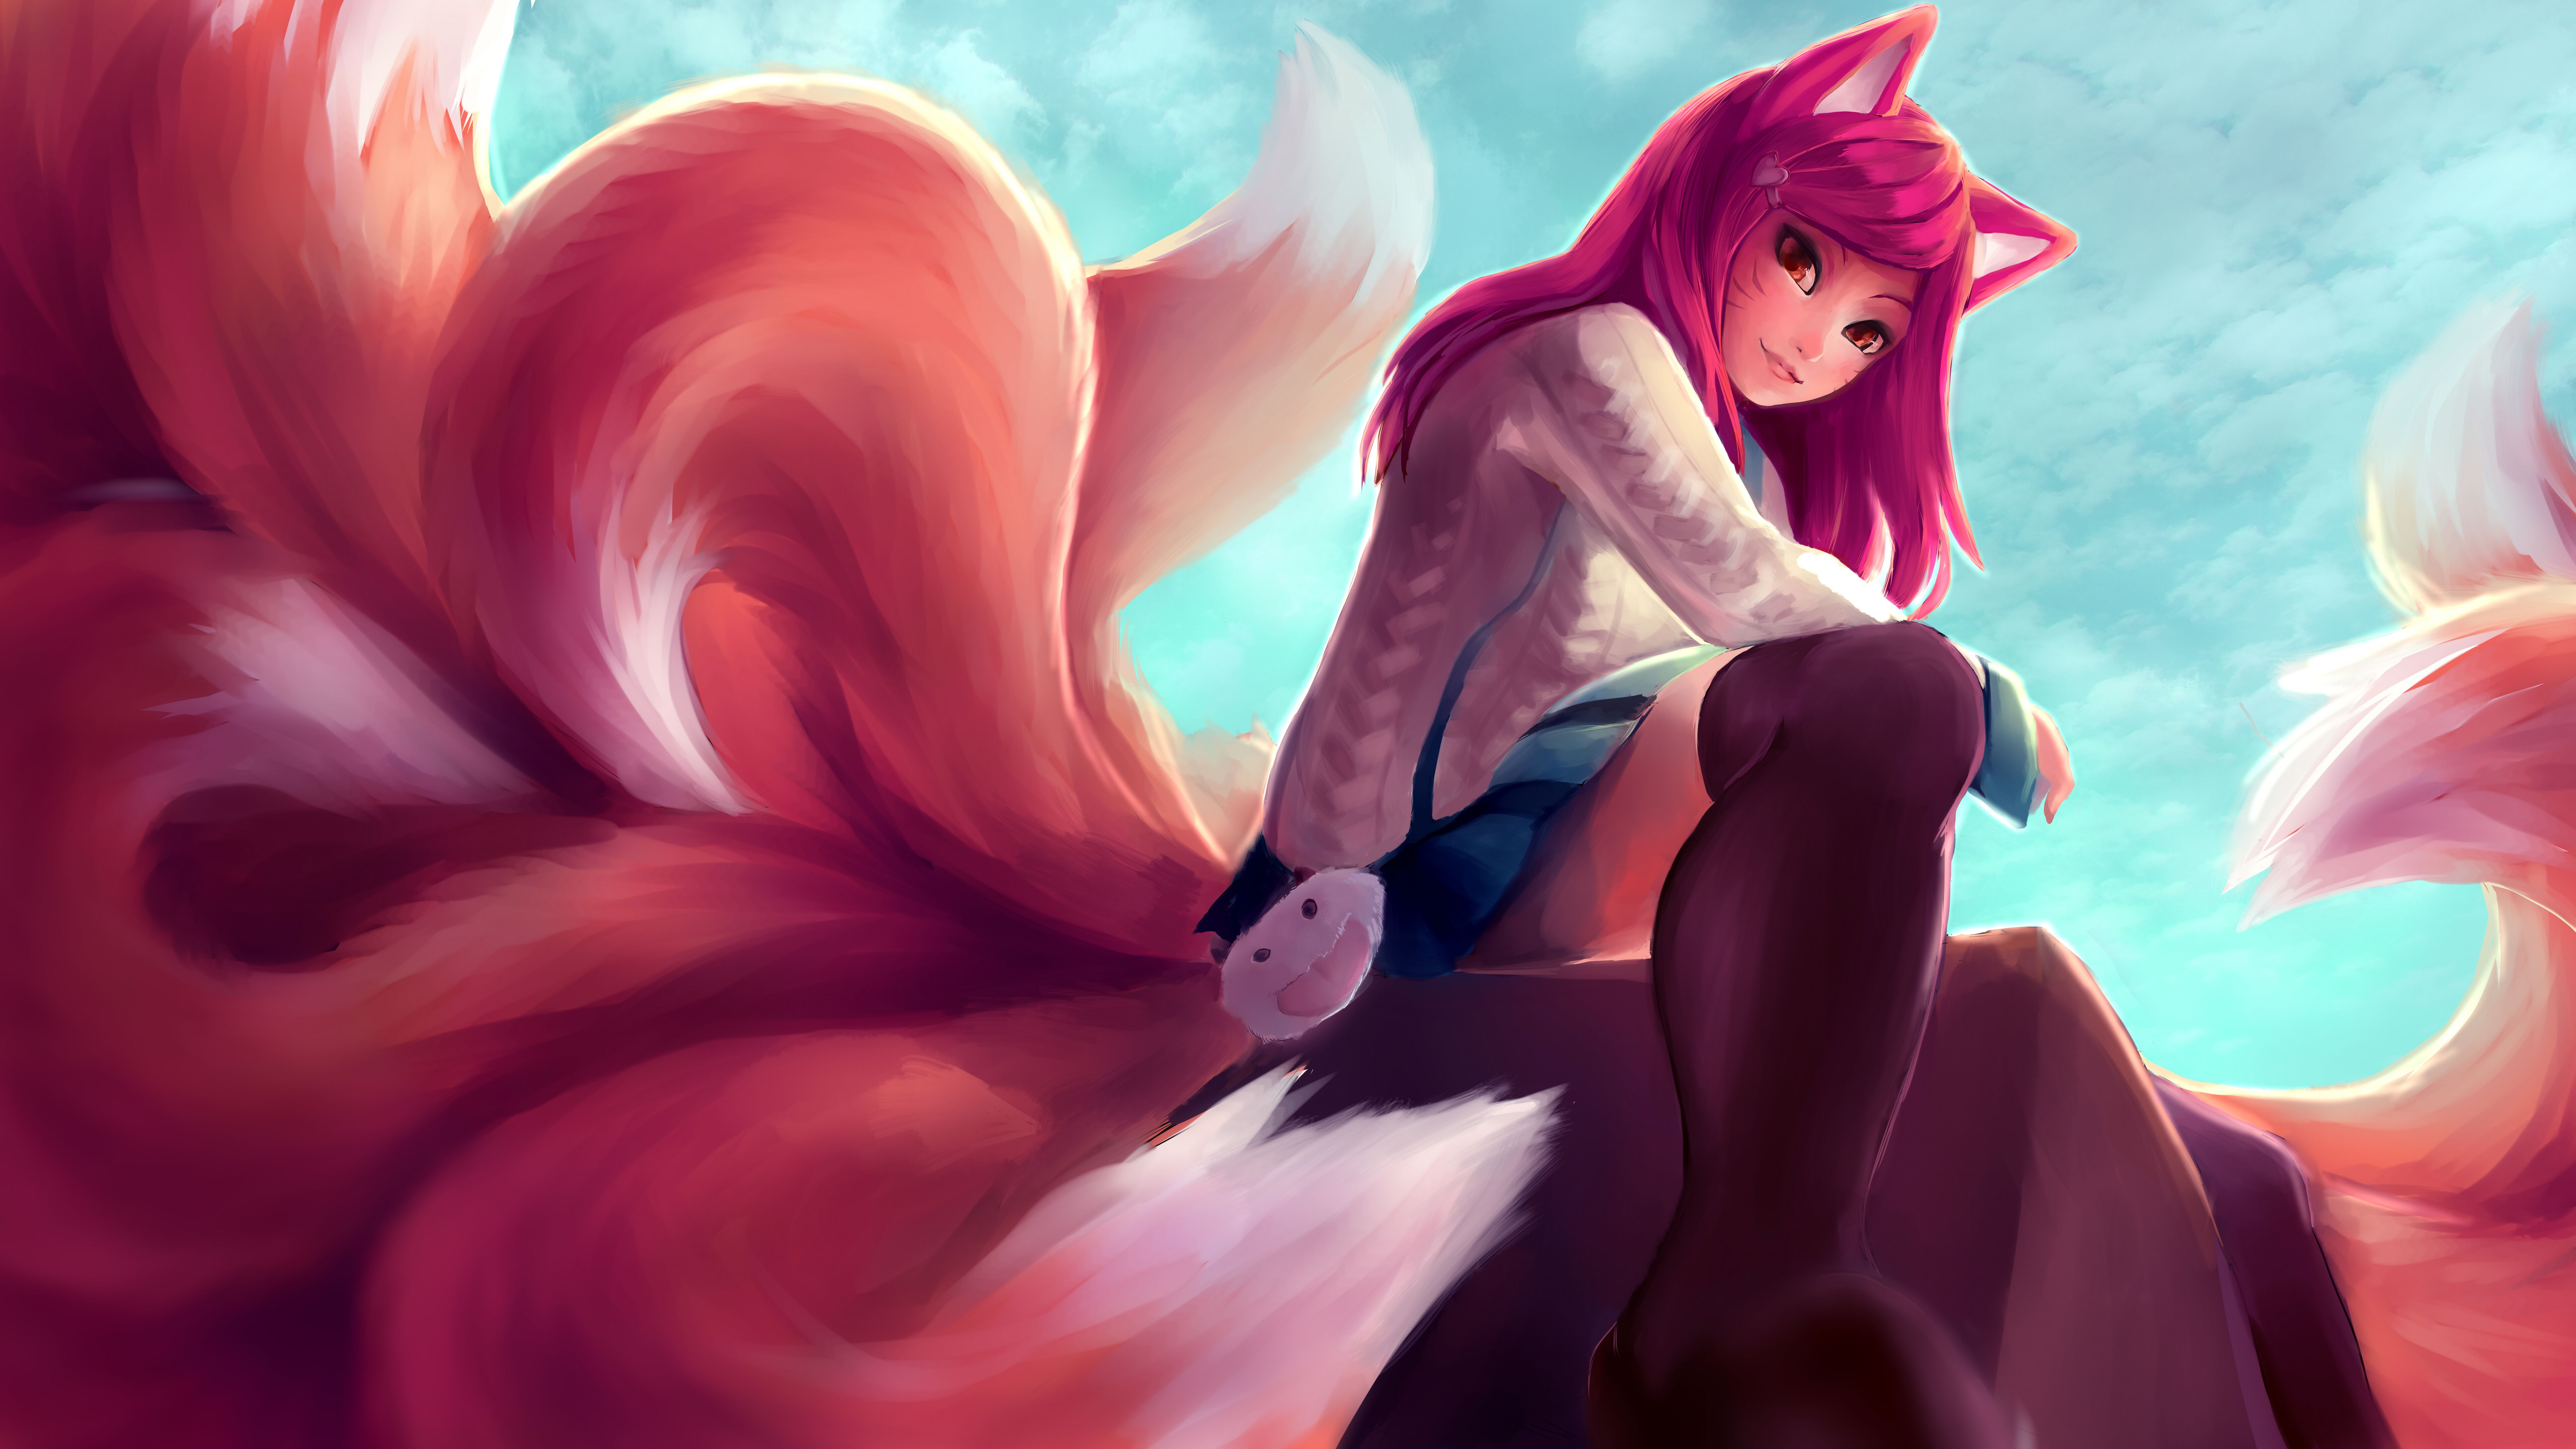 7680x4320 243 Ahri (League Of Legends) HD Wallpapers | Background Images ...